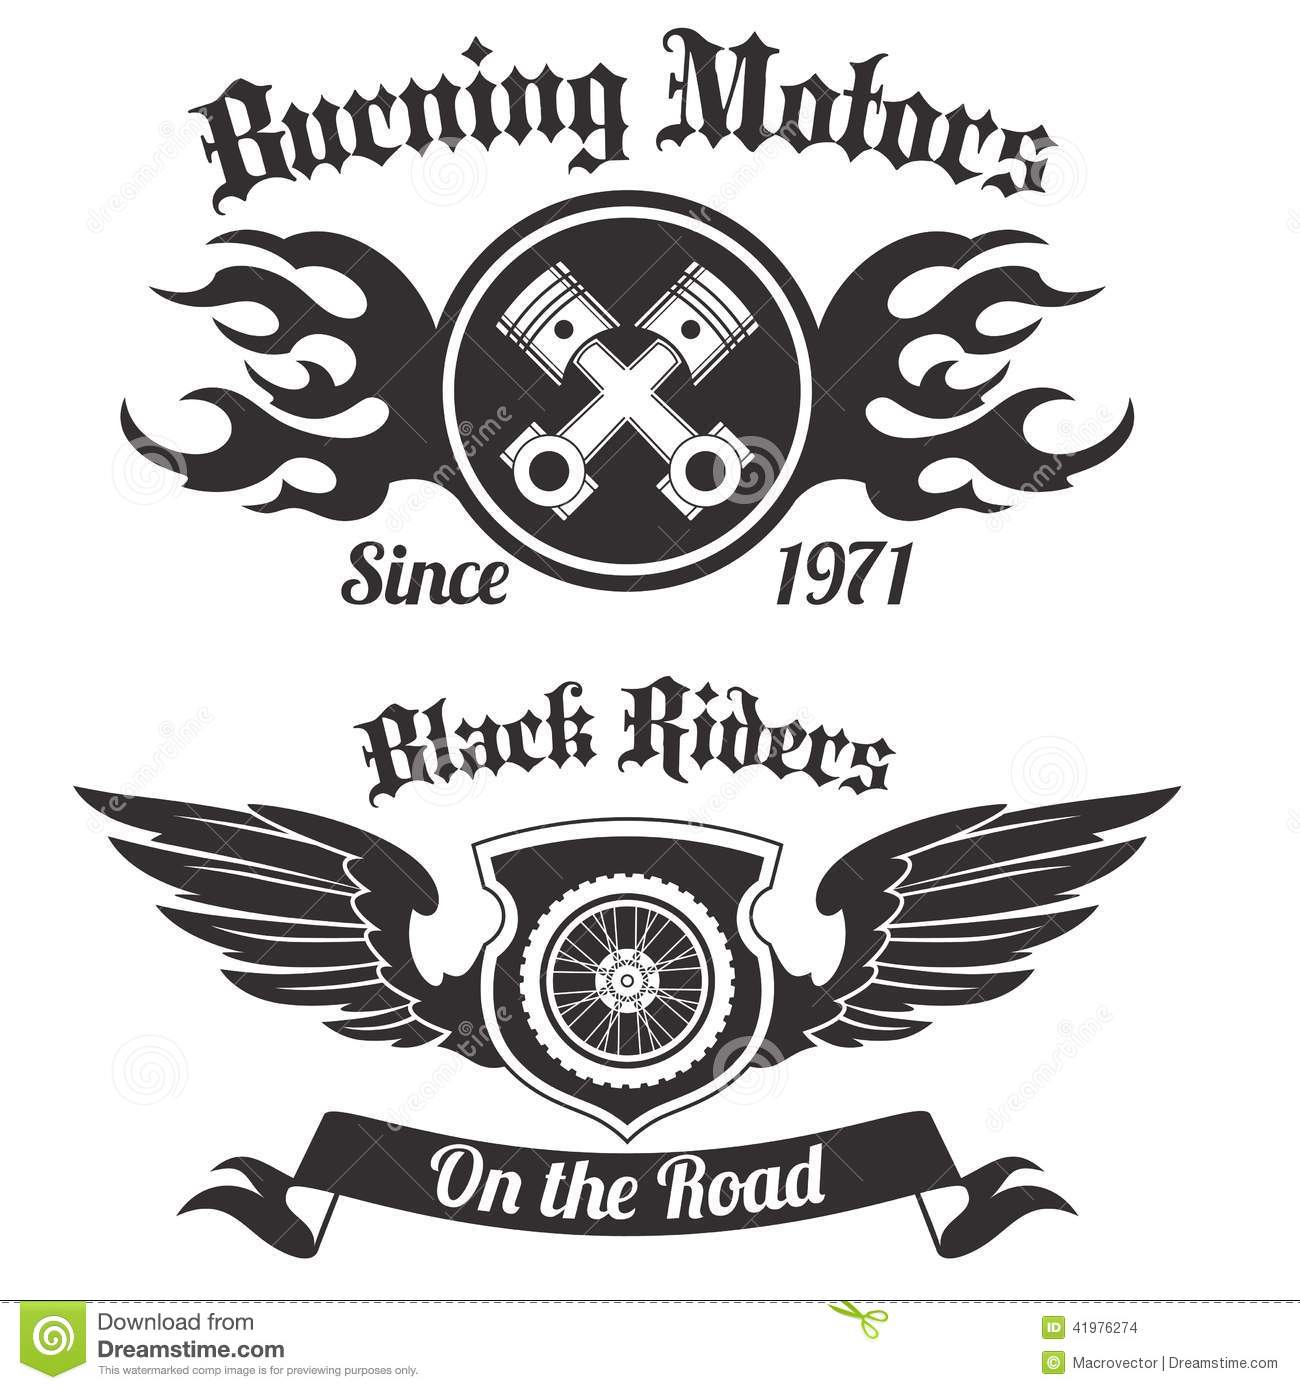 Motorcycle label black stock vector. Illustration of